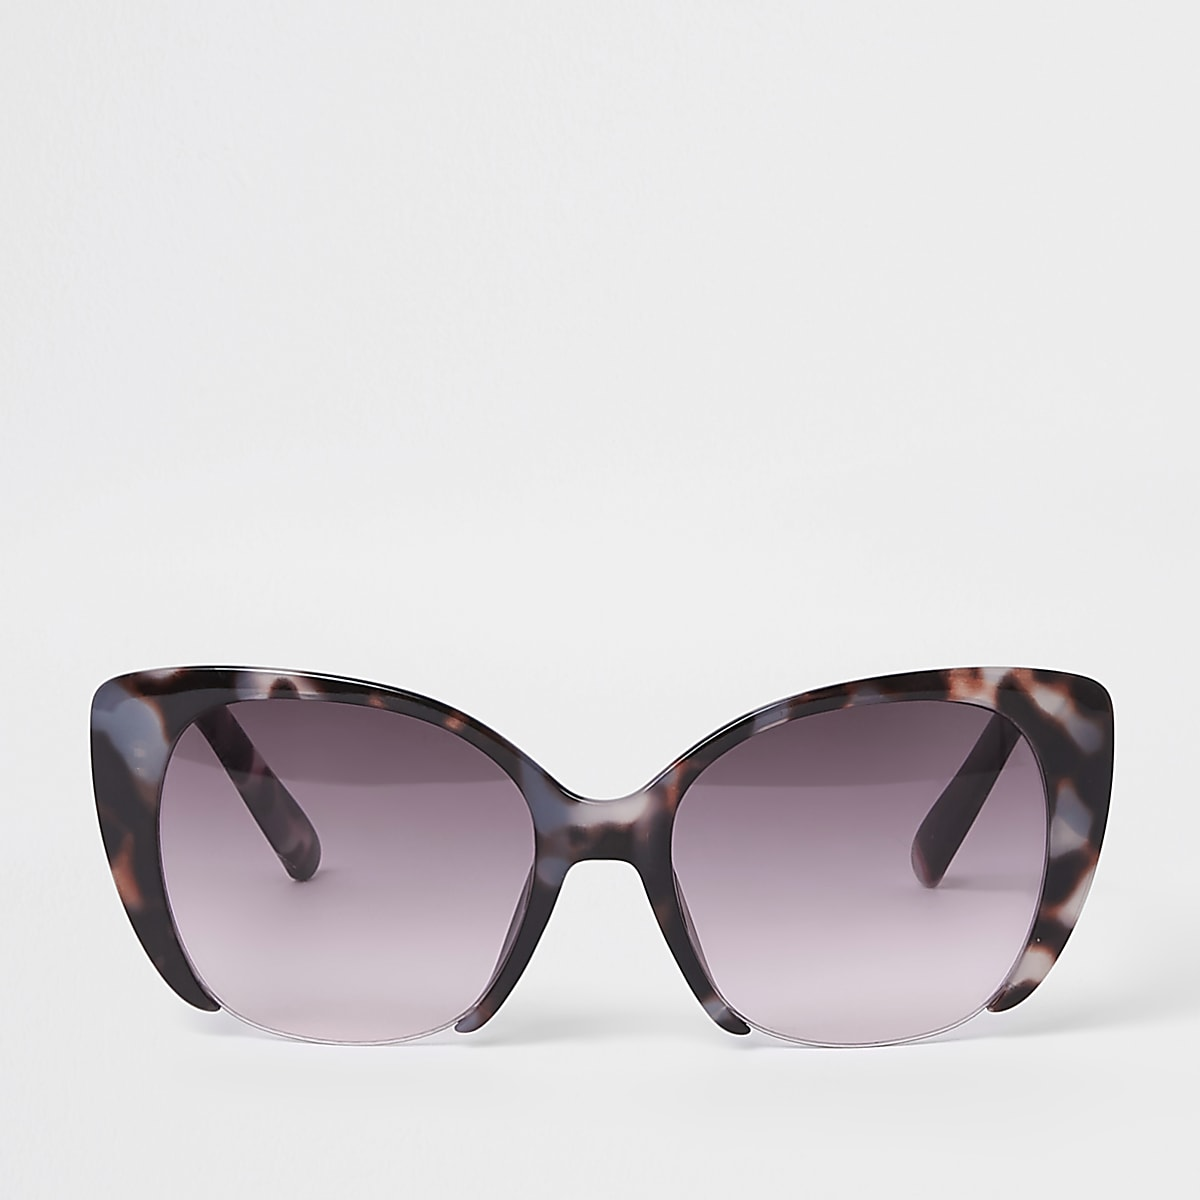 Brown tortoise shell pink lens sunglasses